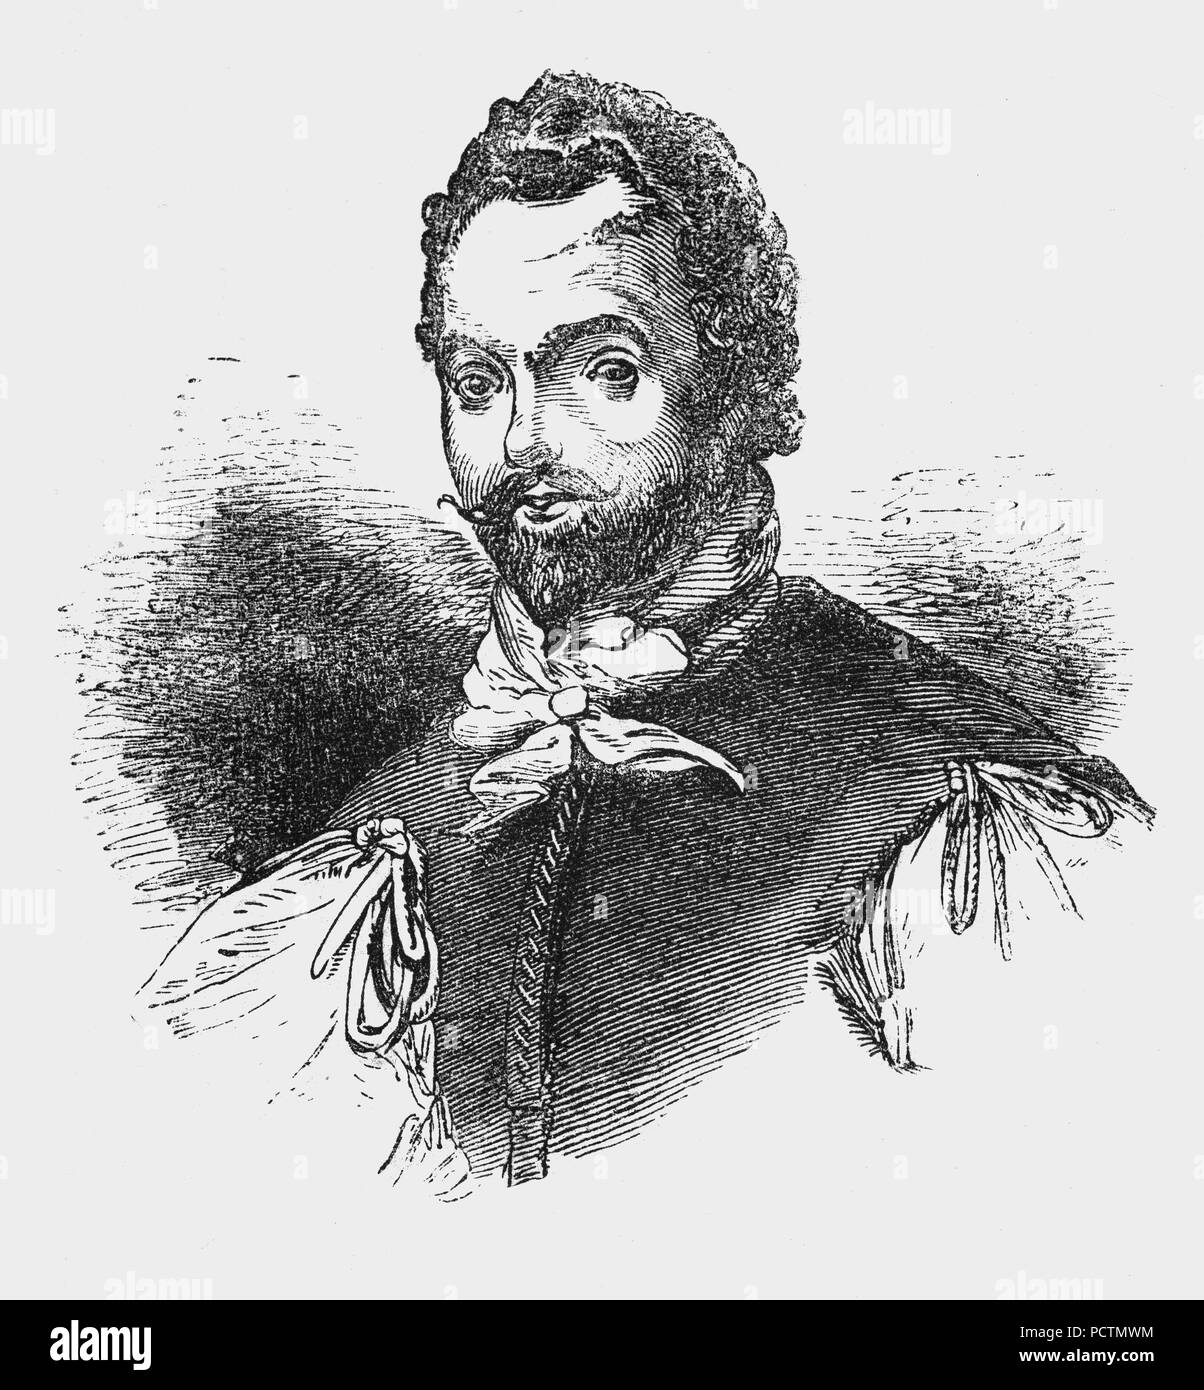 A portrait of Sir Francis Drake (1540-1596), English sea captain, privateer, slave trader, naval officer and explorer of the Elizabethan era. Drake carried out the second circumnavigation of the world in a single expedition, from 1577 to 1580, and was the first to complete the voyage as captain while leading the expedition throughout the entire circumnavigation. Queen Elizabeth I awarded Drake a knighthood in 1581 which he received on the Golden Hind in Deptford. As a Vice Admiral, he was second-in-command of the English fleet in the battle against the Spanish Armada in 1588. - Stock Image